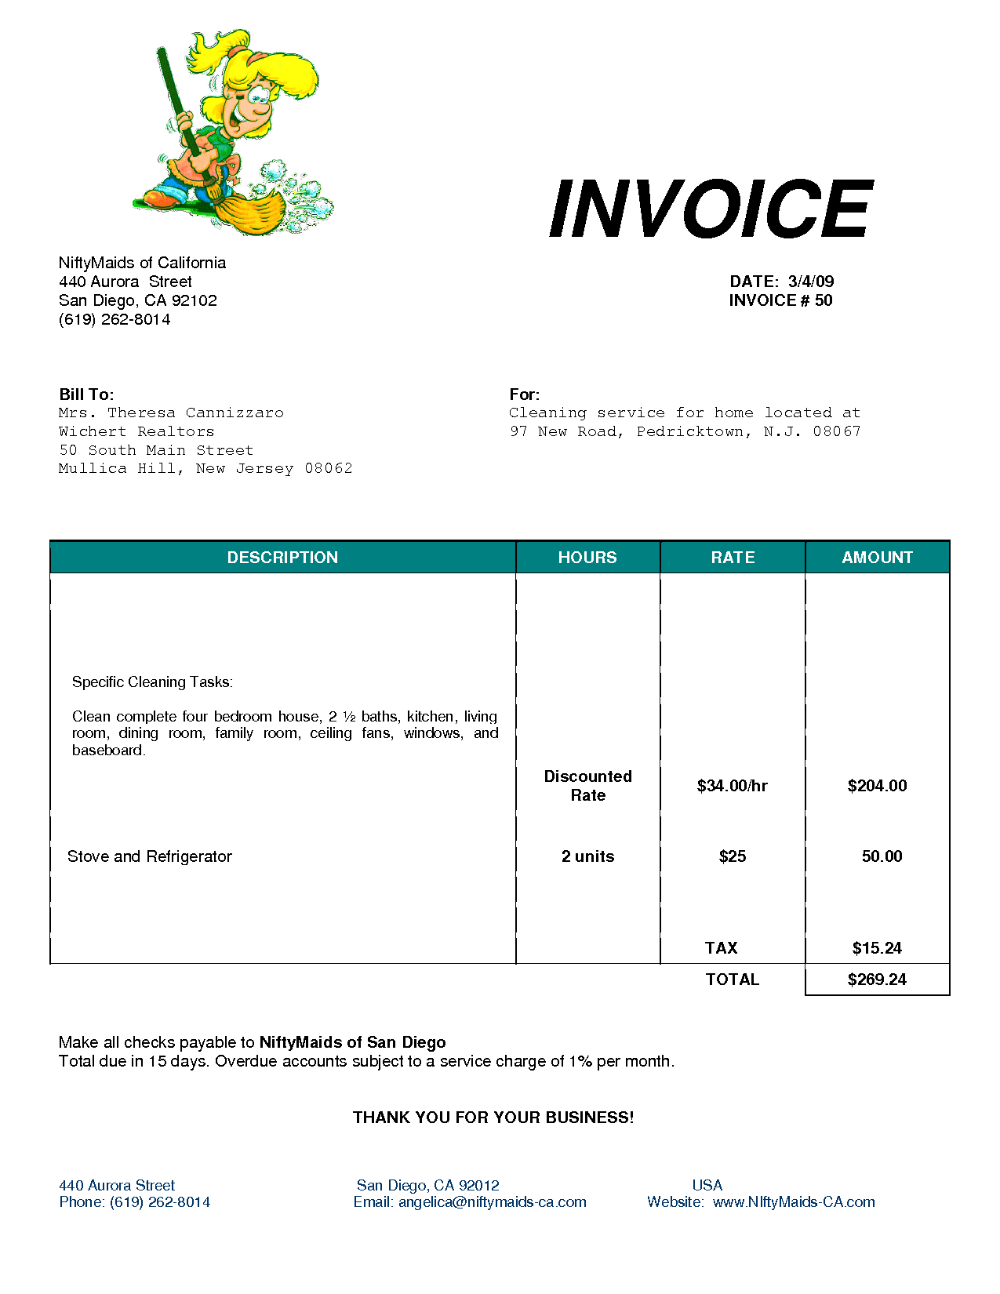 Bhouseb Bcleaningb Bhouseb Cleaning Business Pertaining To House Cleaning Invoice Template Free 10 Pr Invoice Template Word Invoice Template Invoice Sample